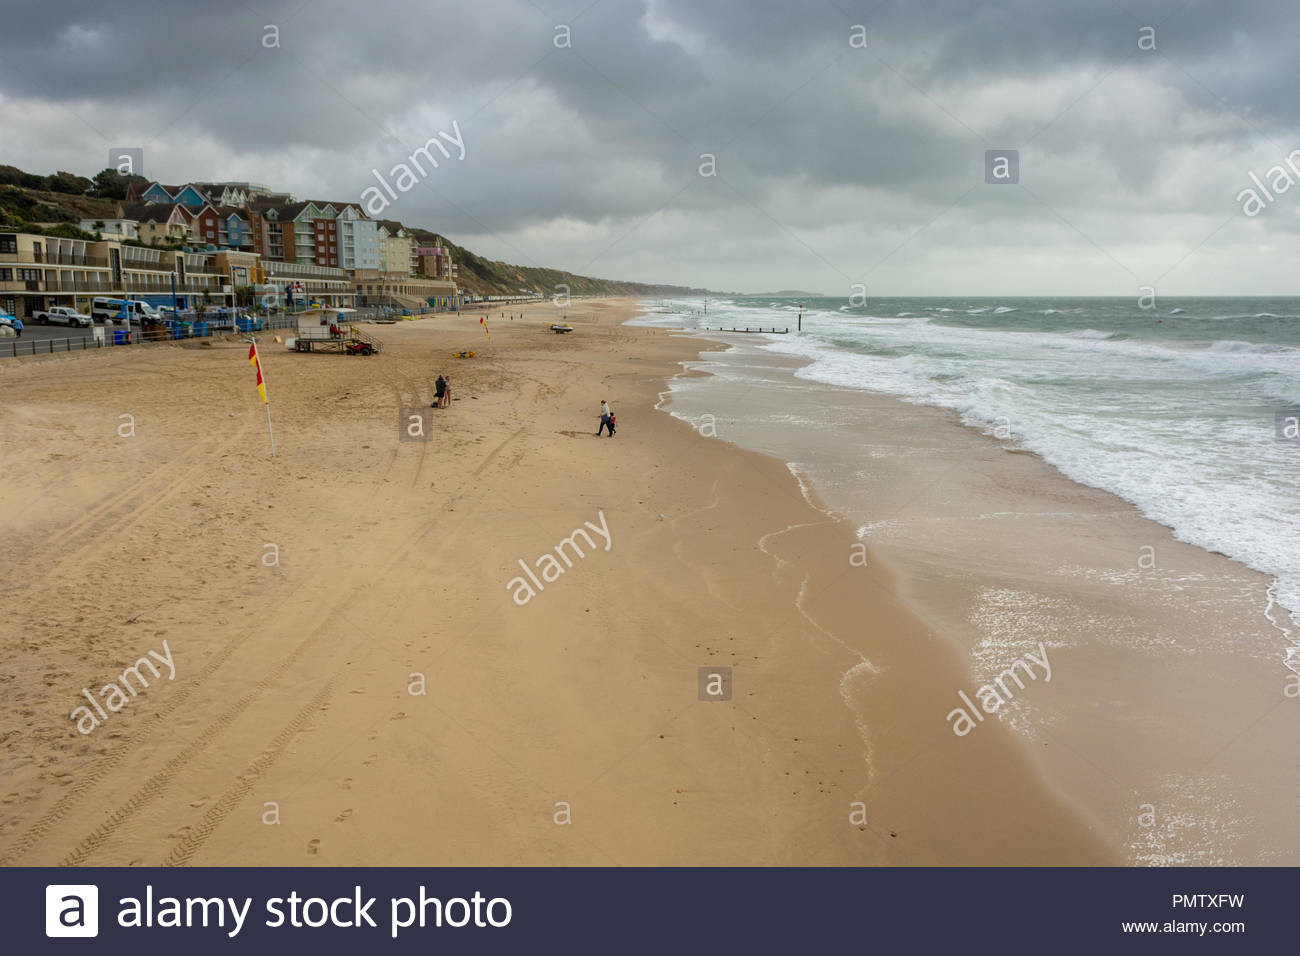 Boscombe, Bournemouth, Dorset, England, UK, September 2018, Weather: Storm Ali, the first named storm of the autumn, brings strong winds to the south coast in the afternoon. - Stock Image